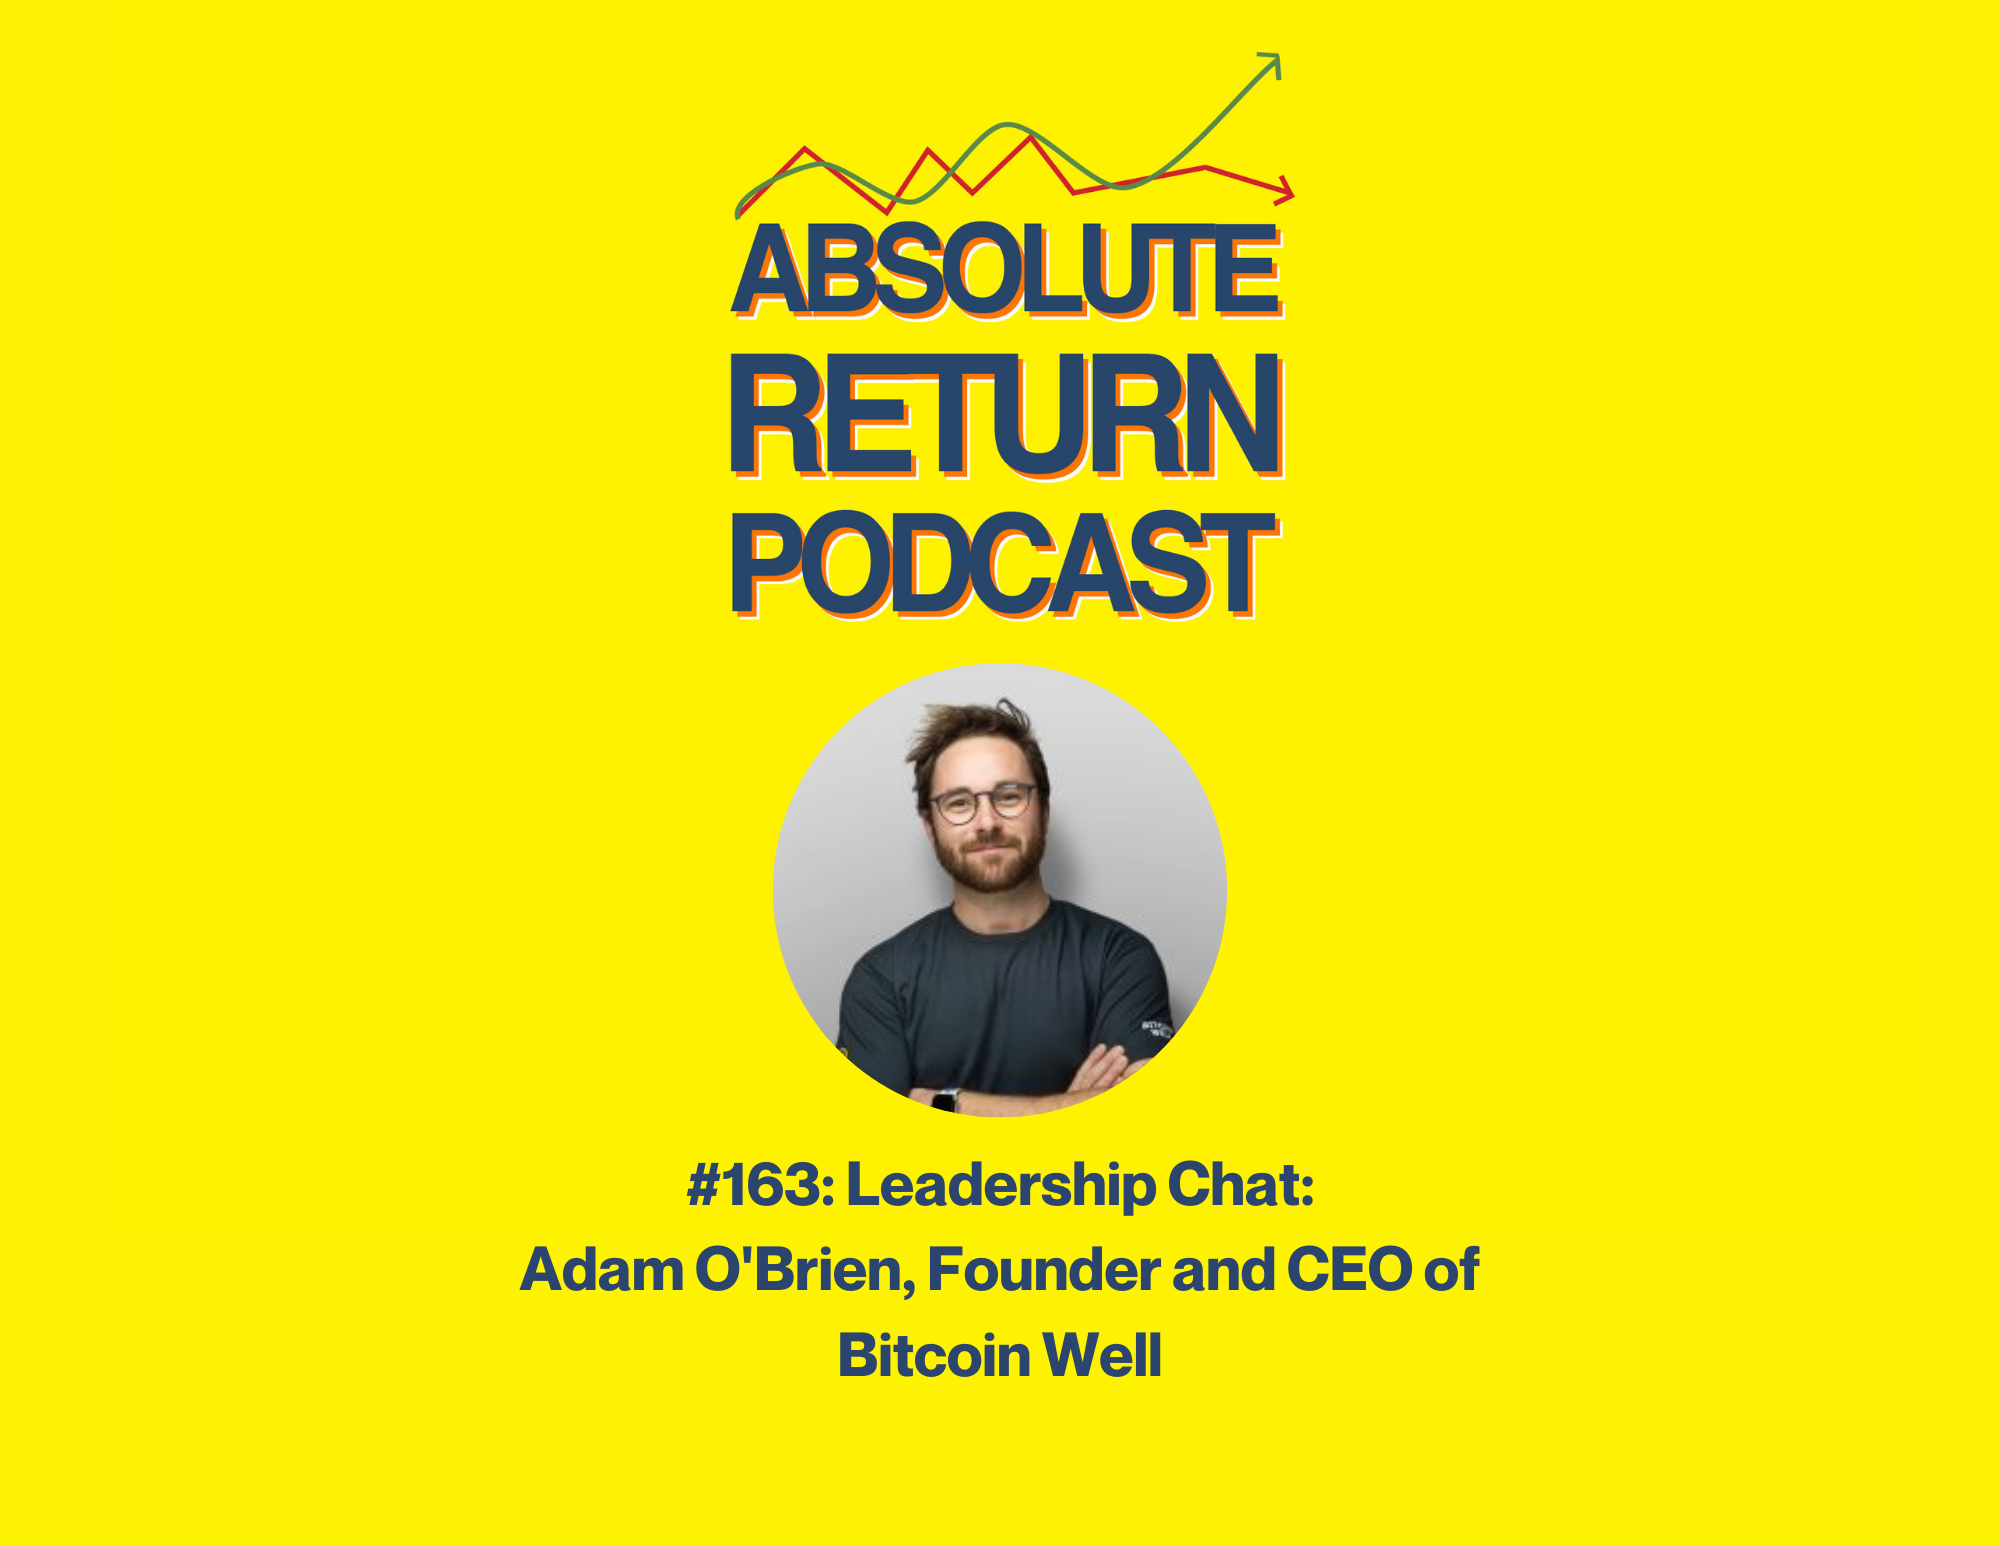 Absolute Return Podcast #163: Leadership Chat: Adam O'Brien, Founder And CEO Of Bitcoin Well